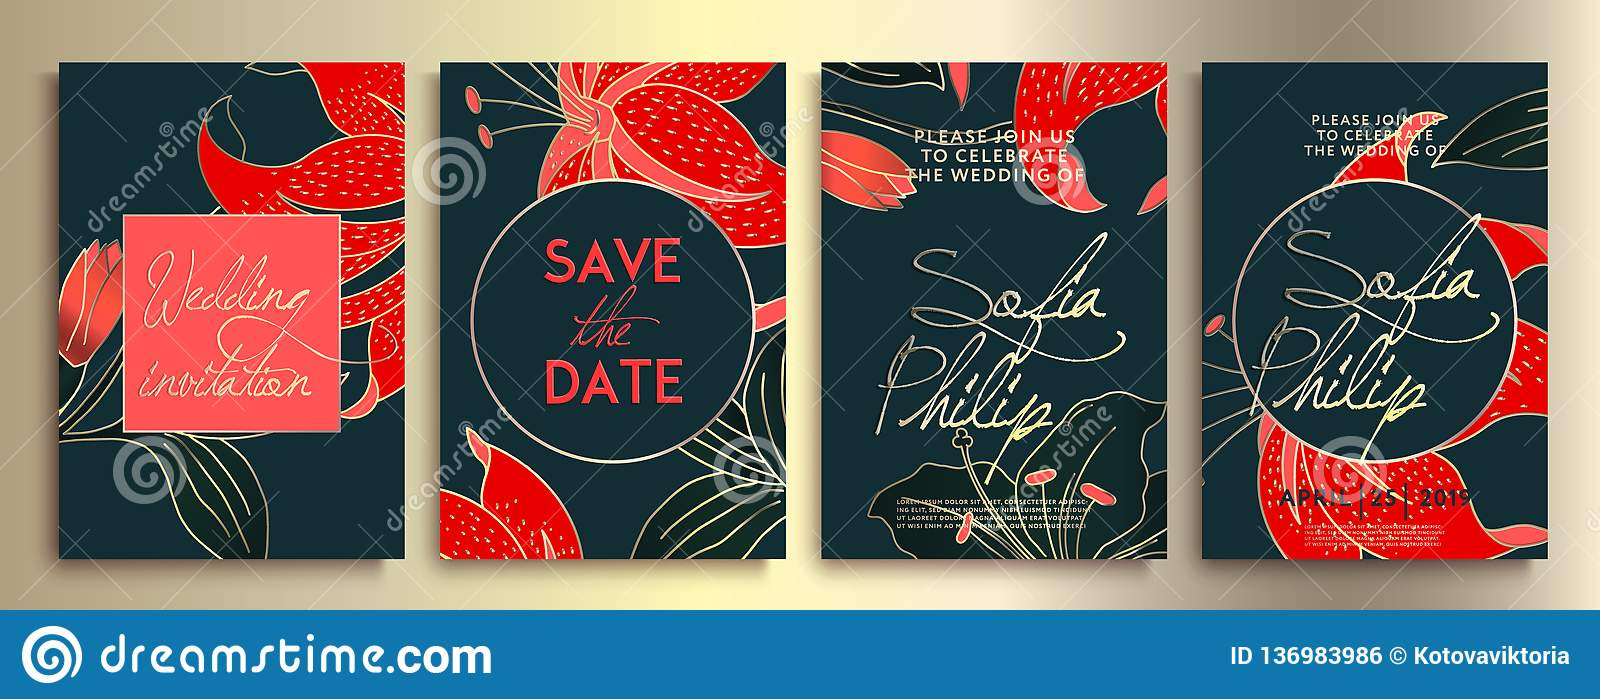 Wedding invitation with flowers and leaves on dark texture. luxury card on blue backgrounds, artistic covers design, colorful.